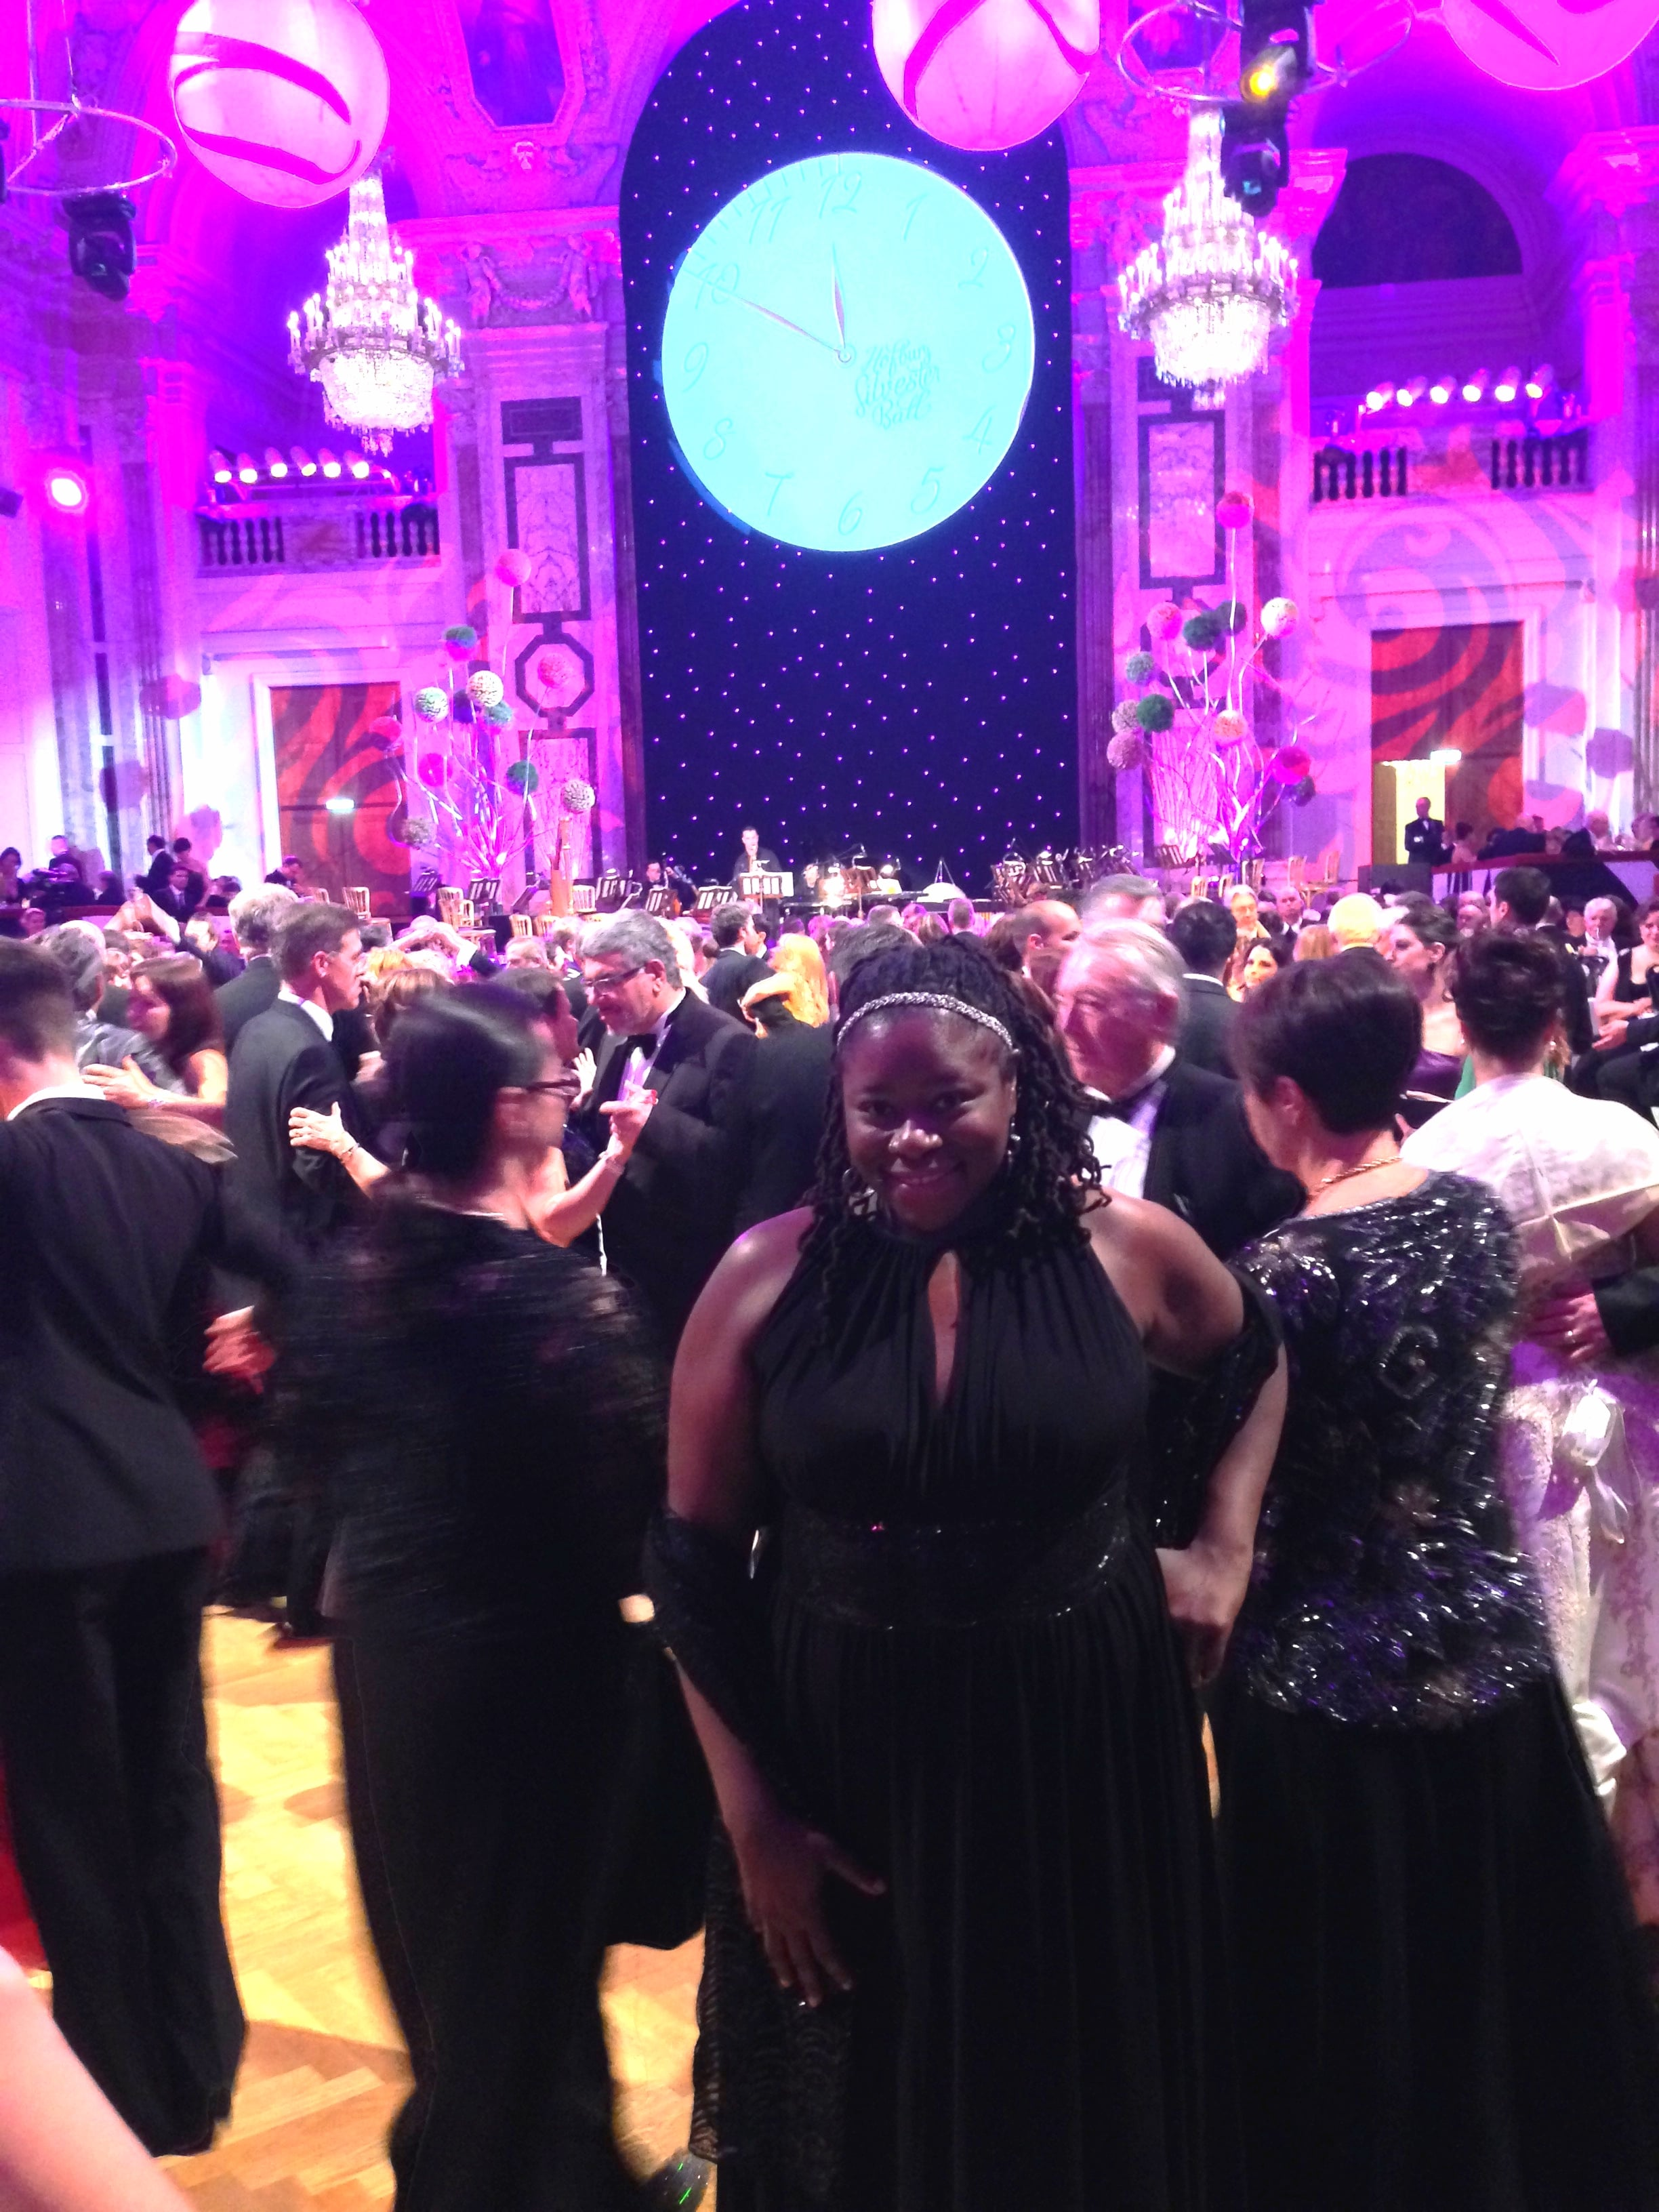 Copy of DysChick at Hofburg Ball (Vienna 2015)